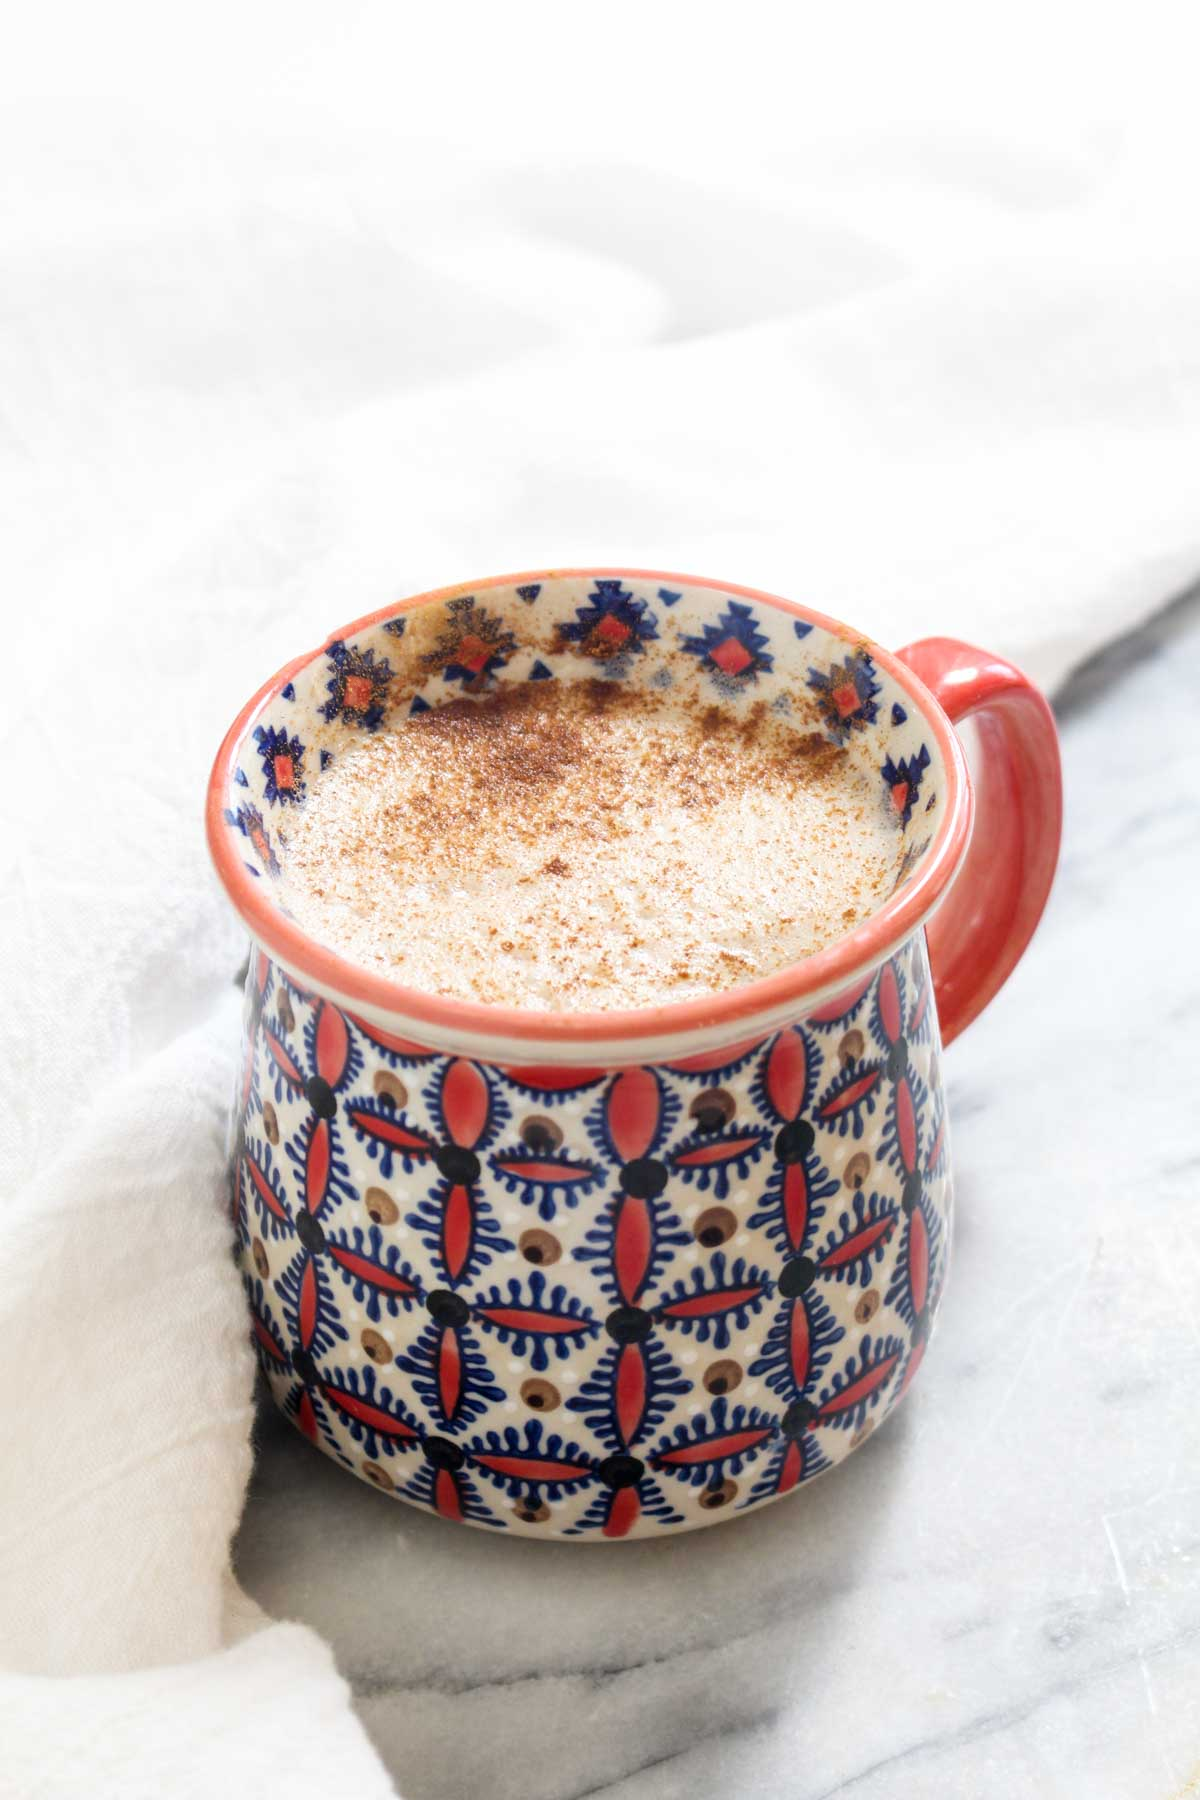 This Superfood Maca Latte is a sweet and creamy pick me up that gives you energy without the crash that comes with caffeine. Maca has been known to increase energy, regulate hormones, and reduce inflammation. Easy to make with 5 ingredients and 1 simple step! | CatchingSeeds.com